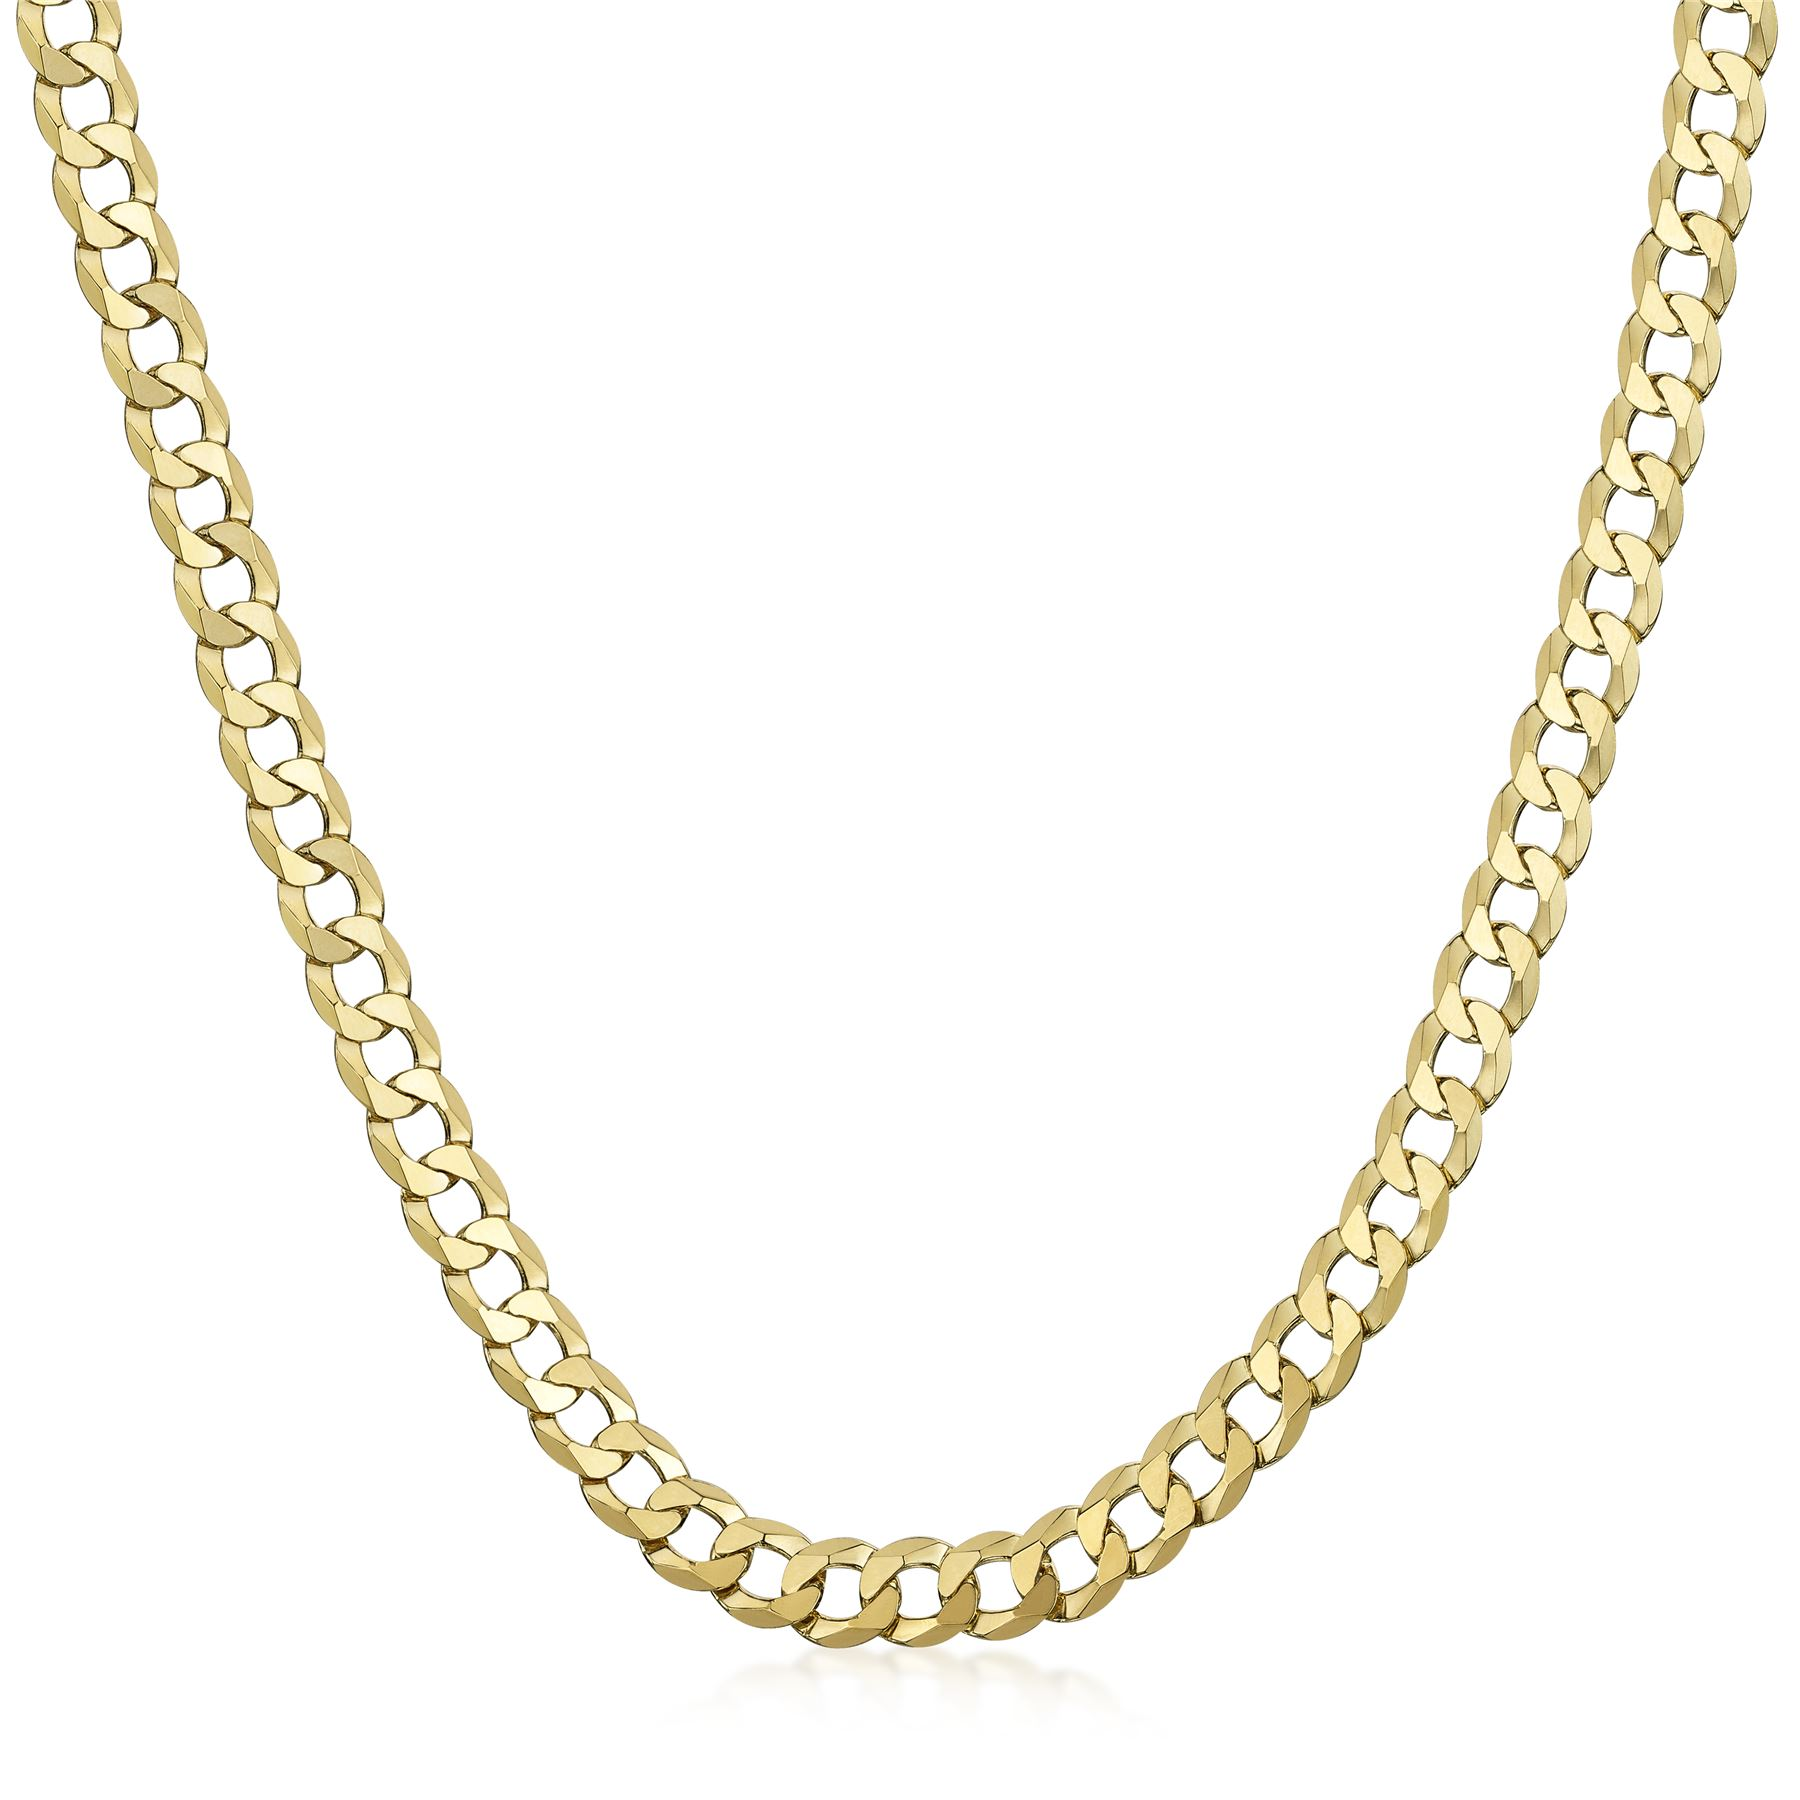 Amberta-925-Sterling-Silver-Link-Chain-Mens-Curb-Cuban-Necklace-ALL-SIZES-Italy thumbnail 61